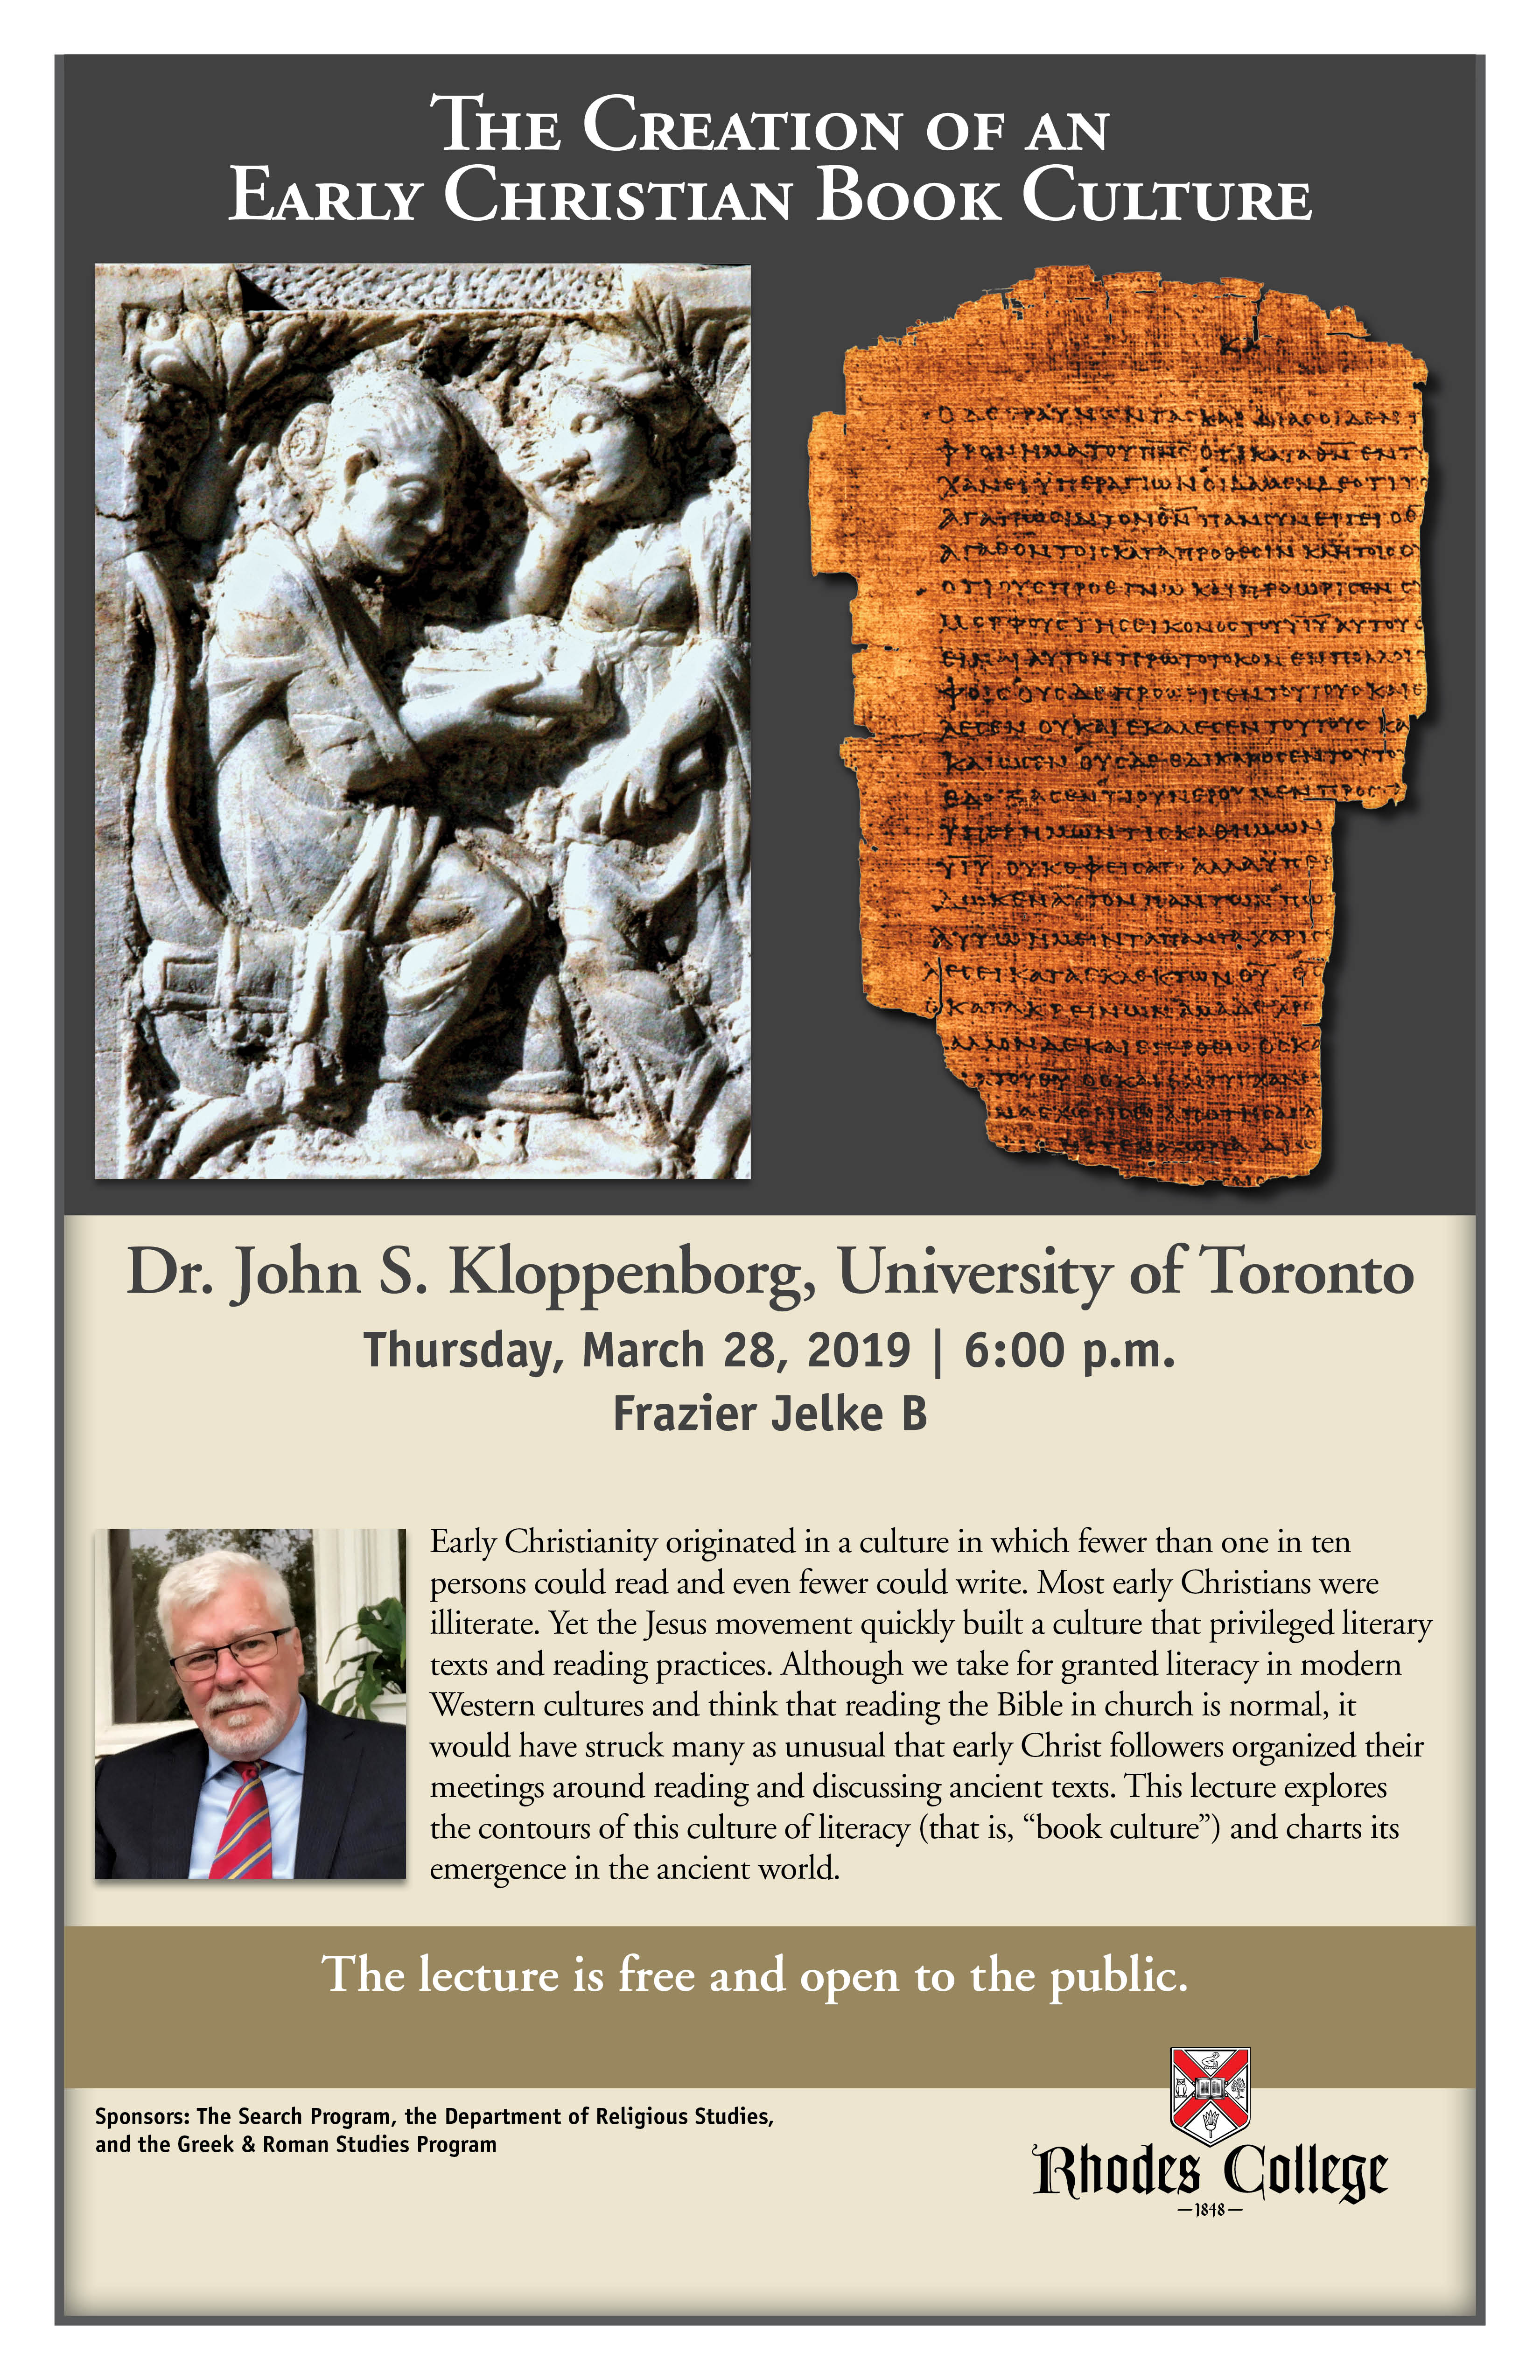 poster for an upcoming lecture on March 28